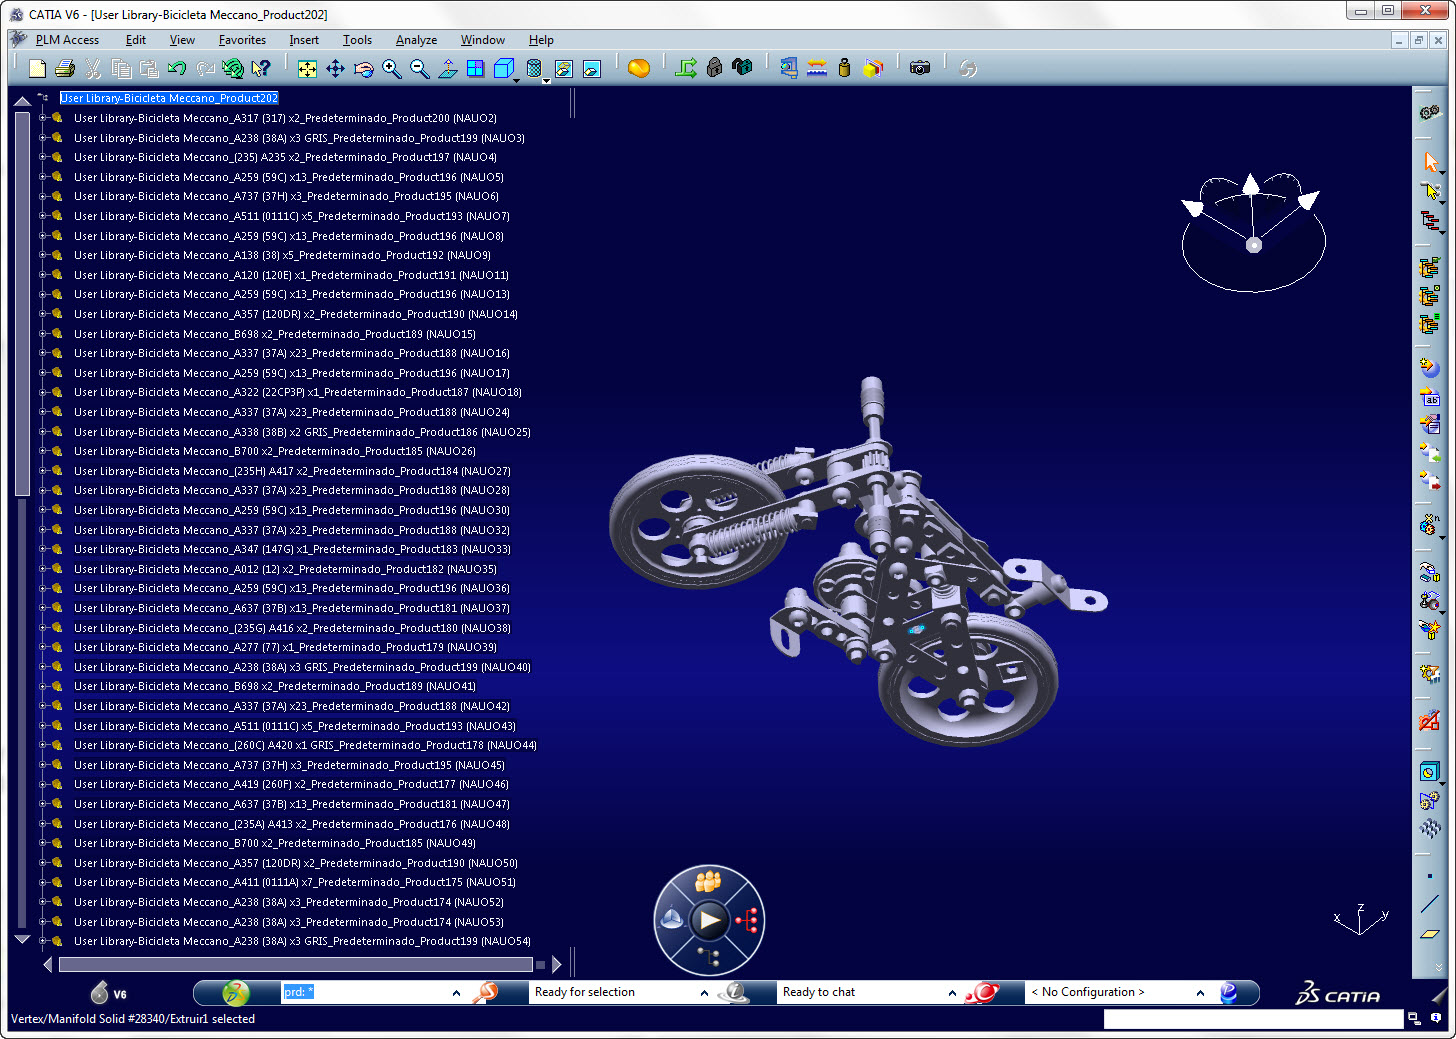 CATIA V6 im Blue Layer